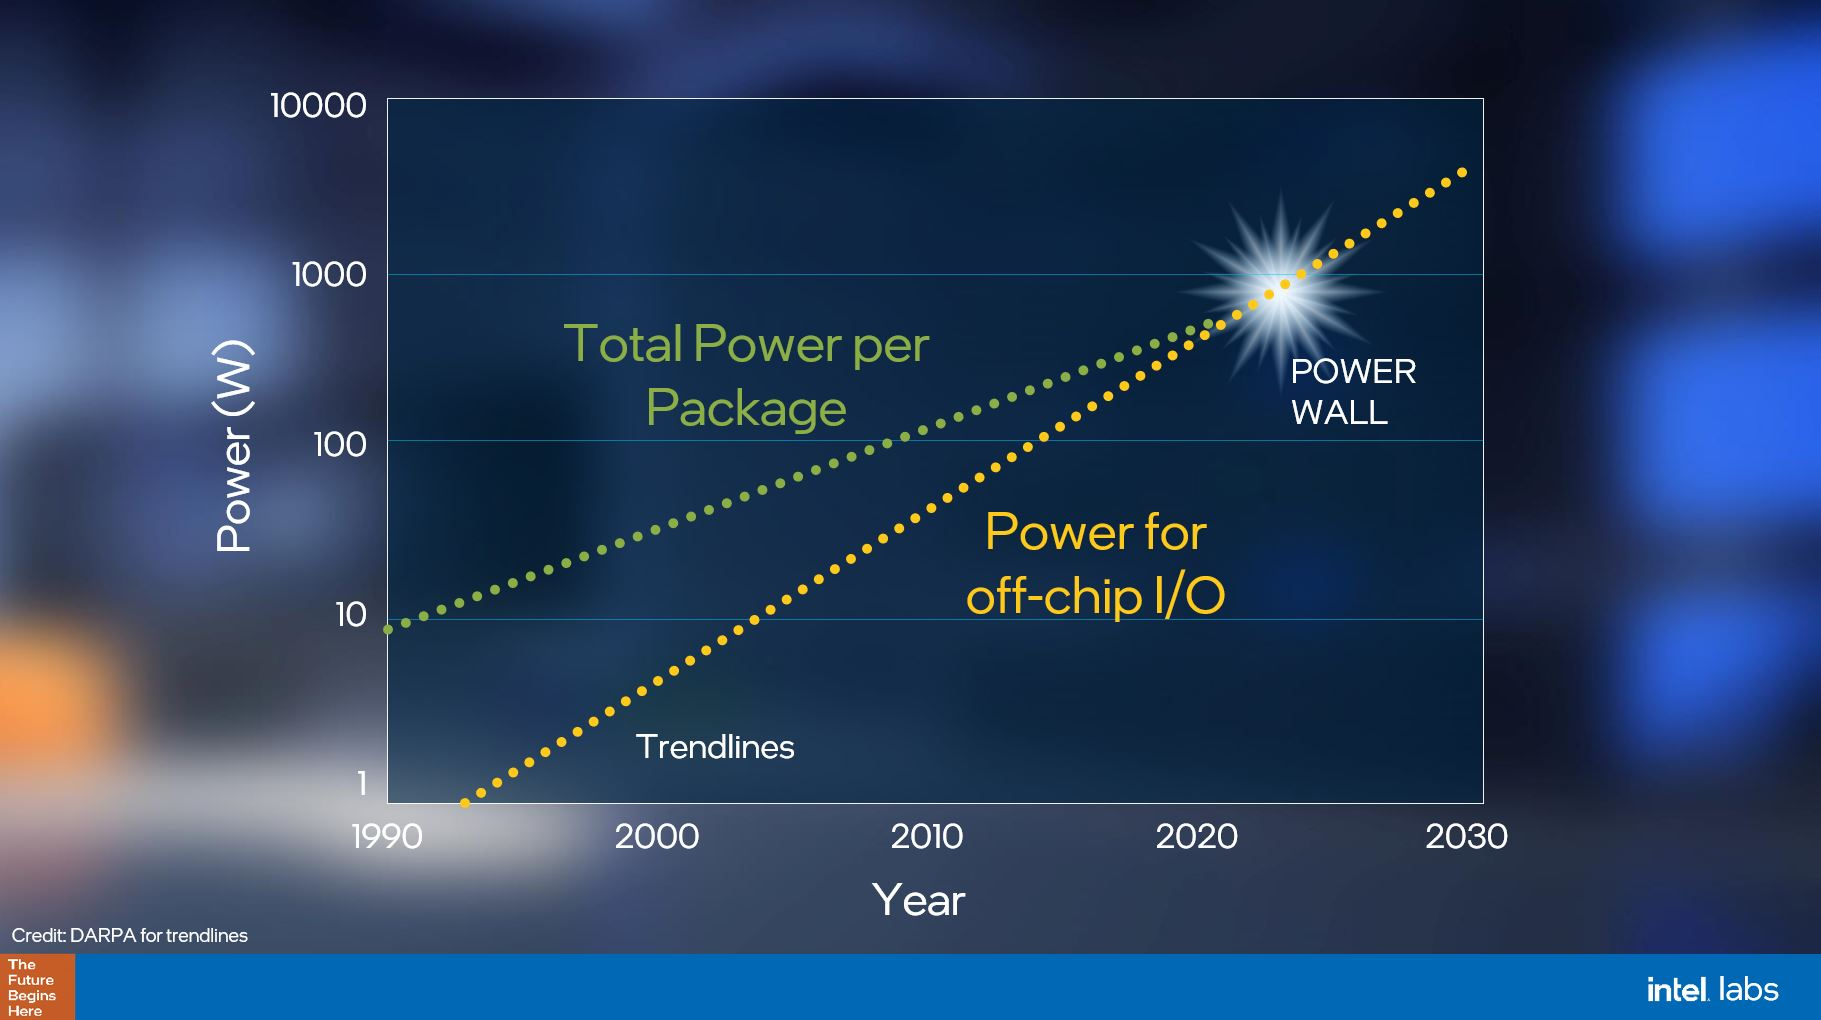 Intel Electrical IO Power Package Power Limits